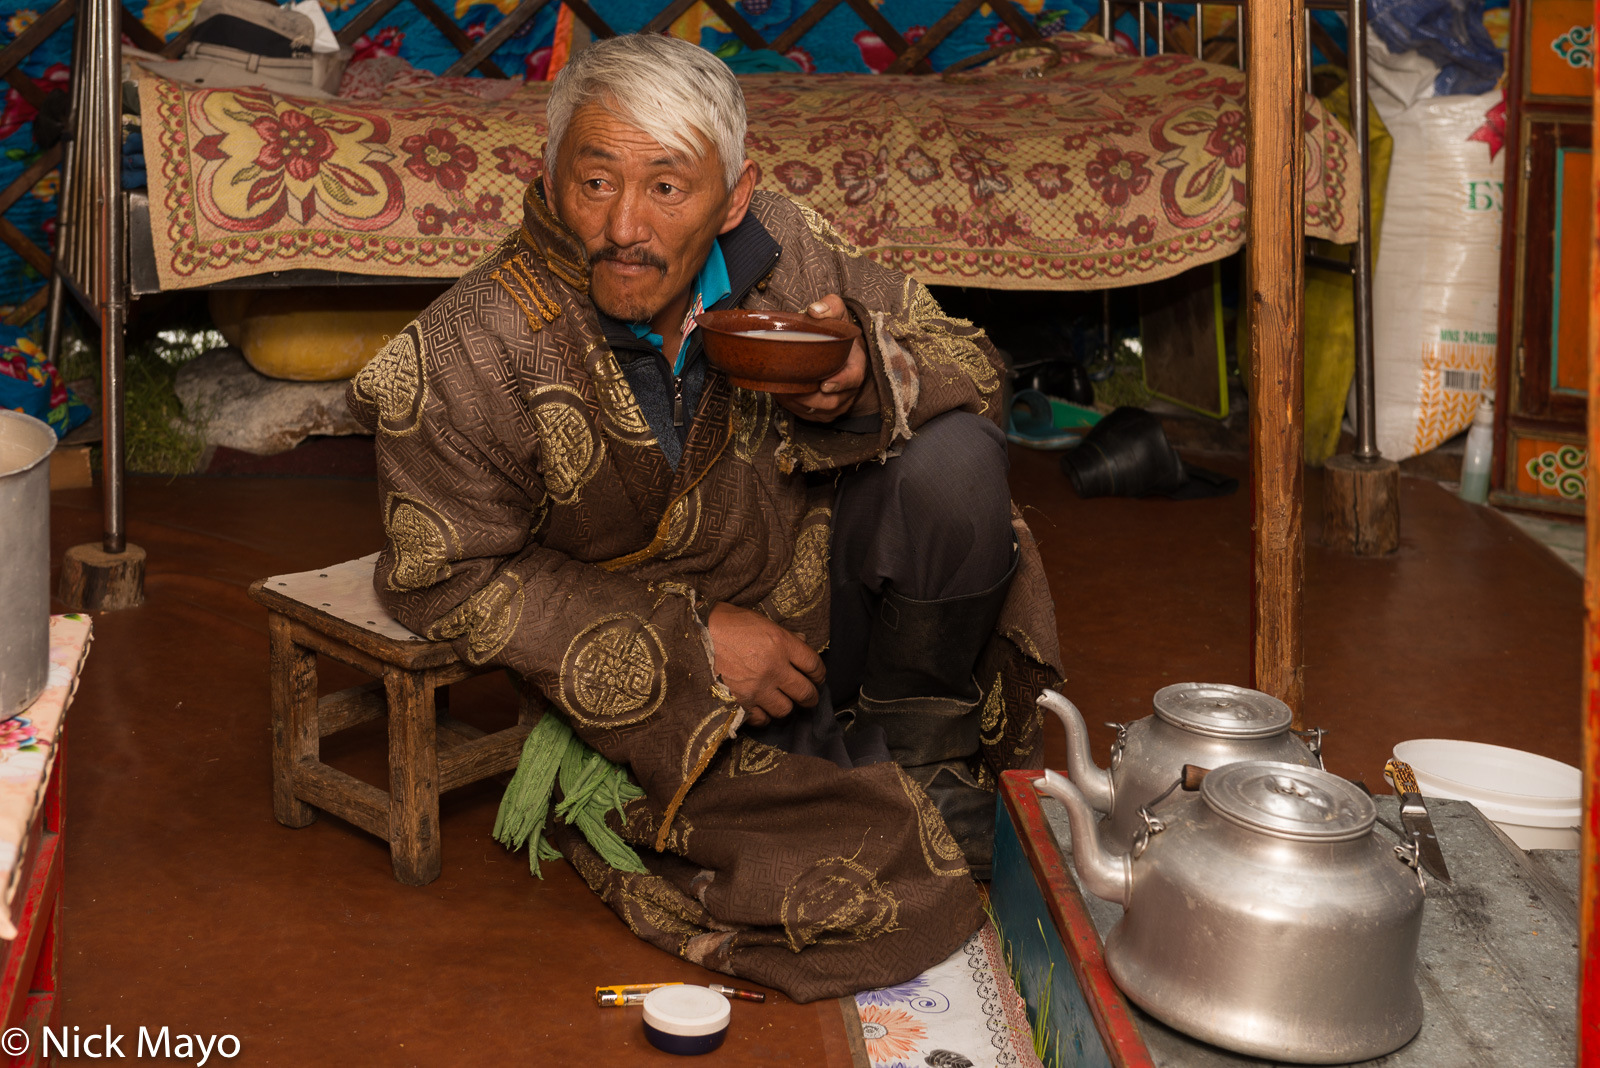 A Darkhad herder in his yurt on the Alag-Erdene steppe drinking tea while kettles boil on the stove.